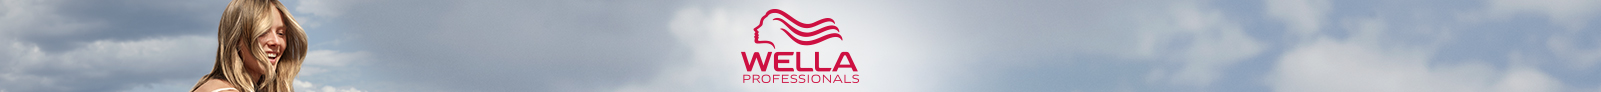 Wellastore_Wella-Professionals-2_Subcategory-Banner_1601x92-Resolution_96.jpg